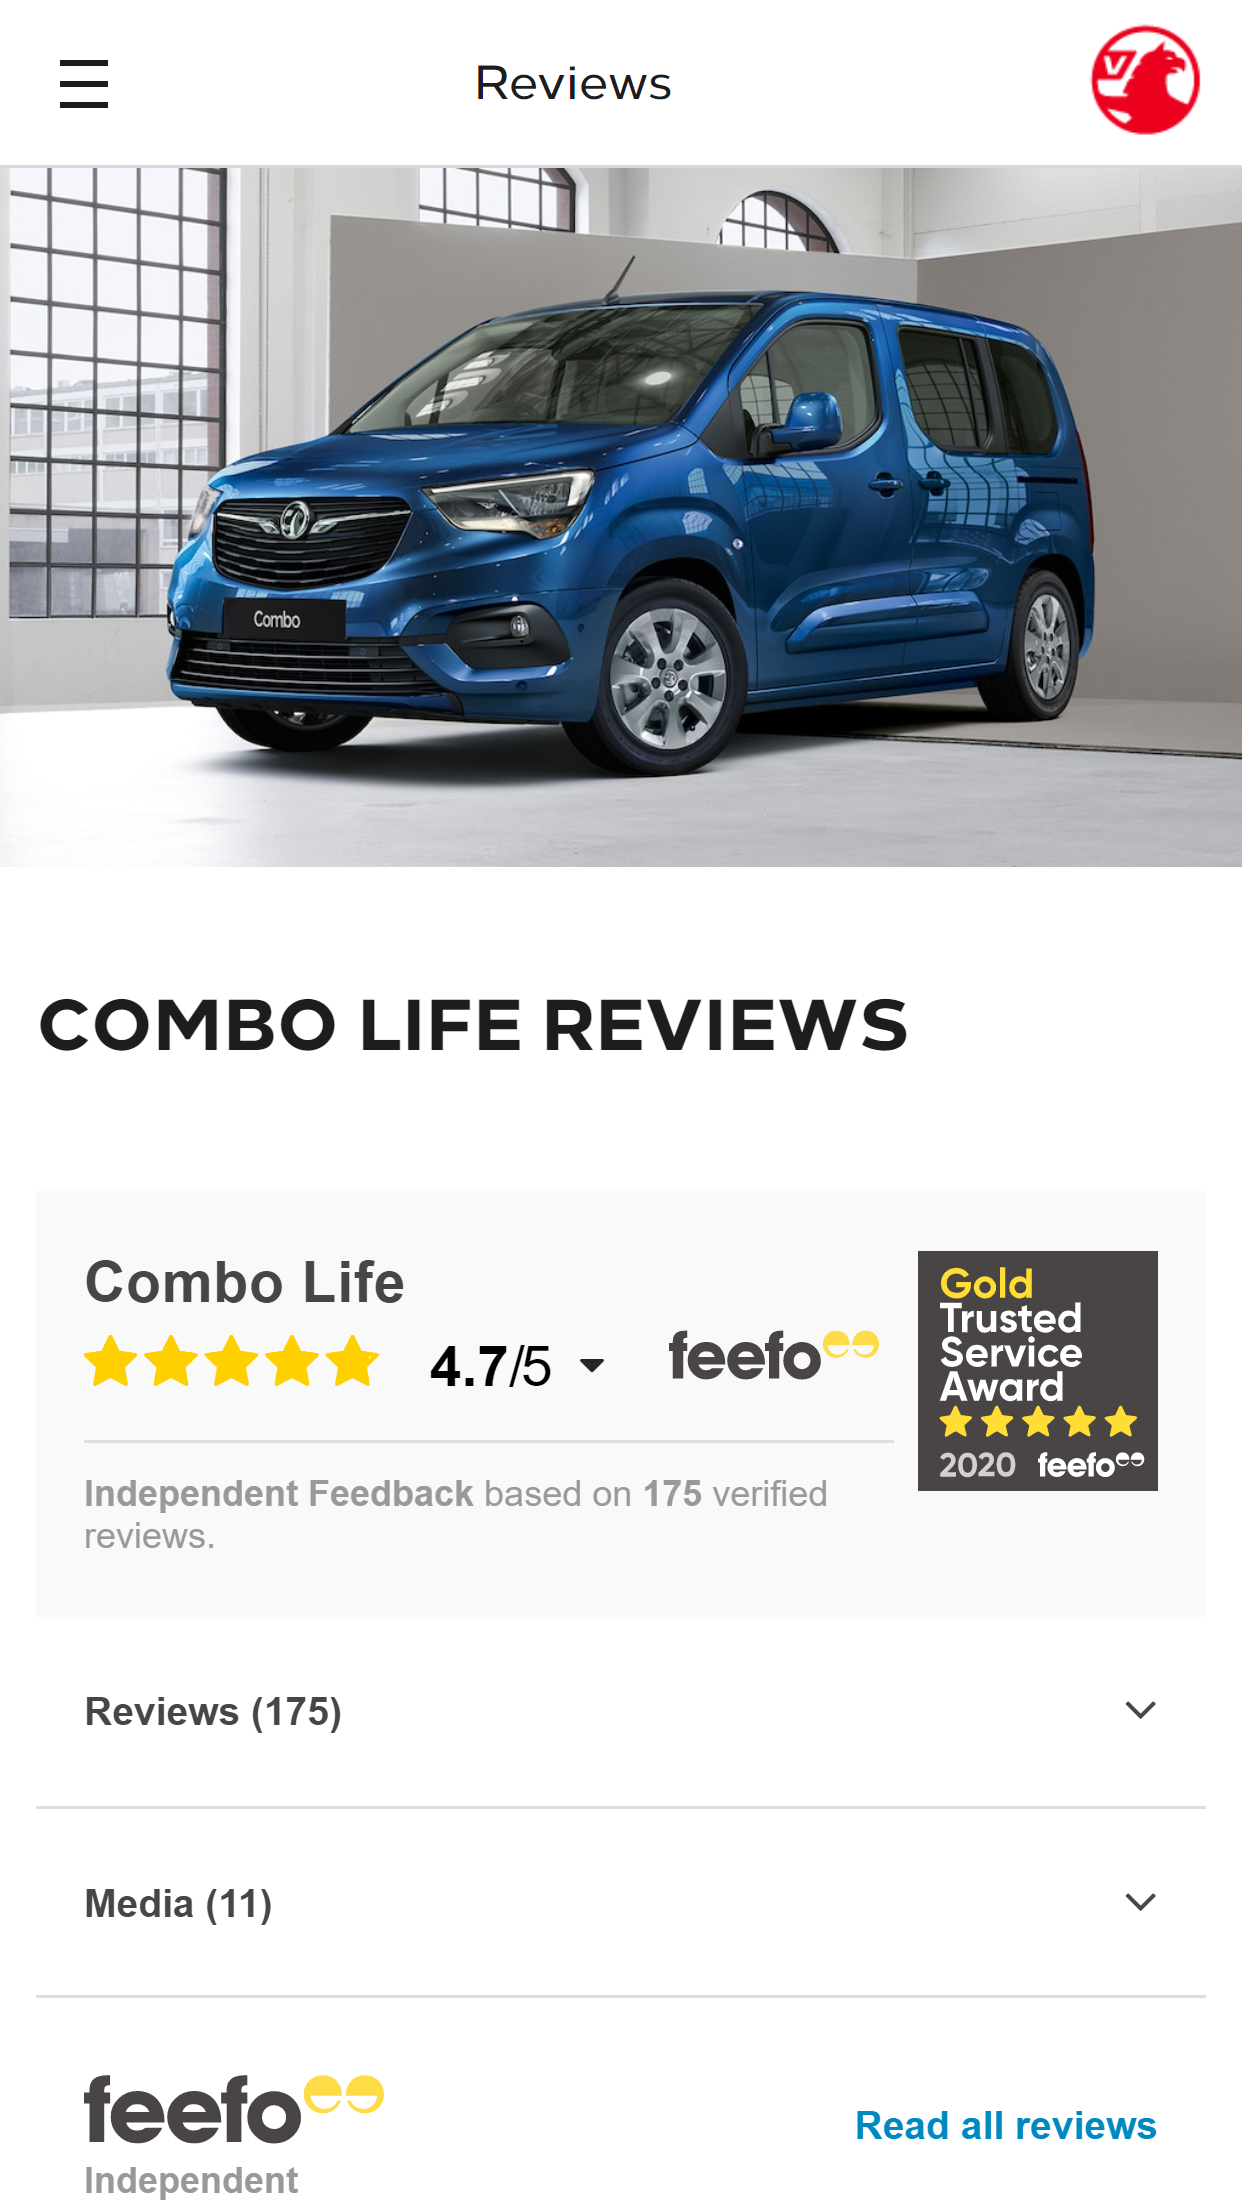 www.vauxhall.co.uk_cars_combo-life_reviews.html(iPhone 6_7_8 Plus)